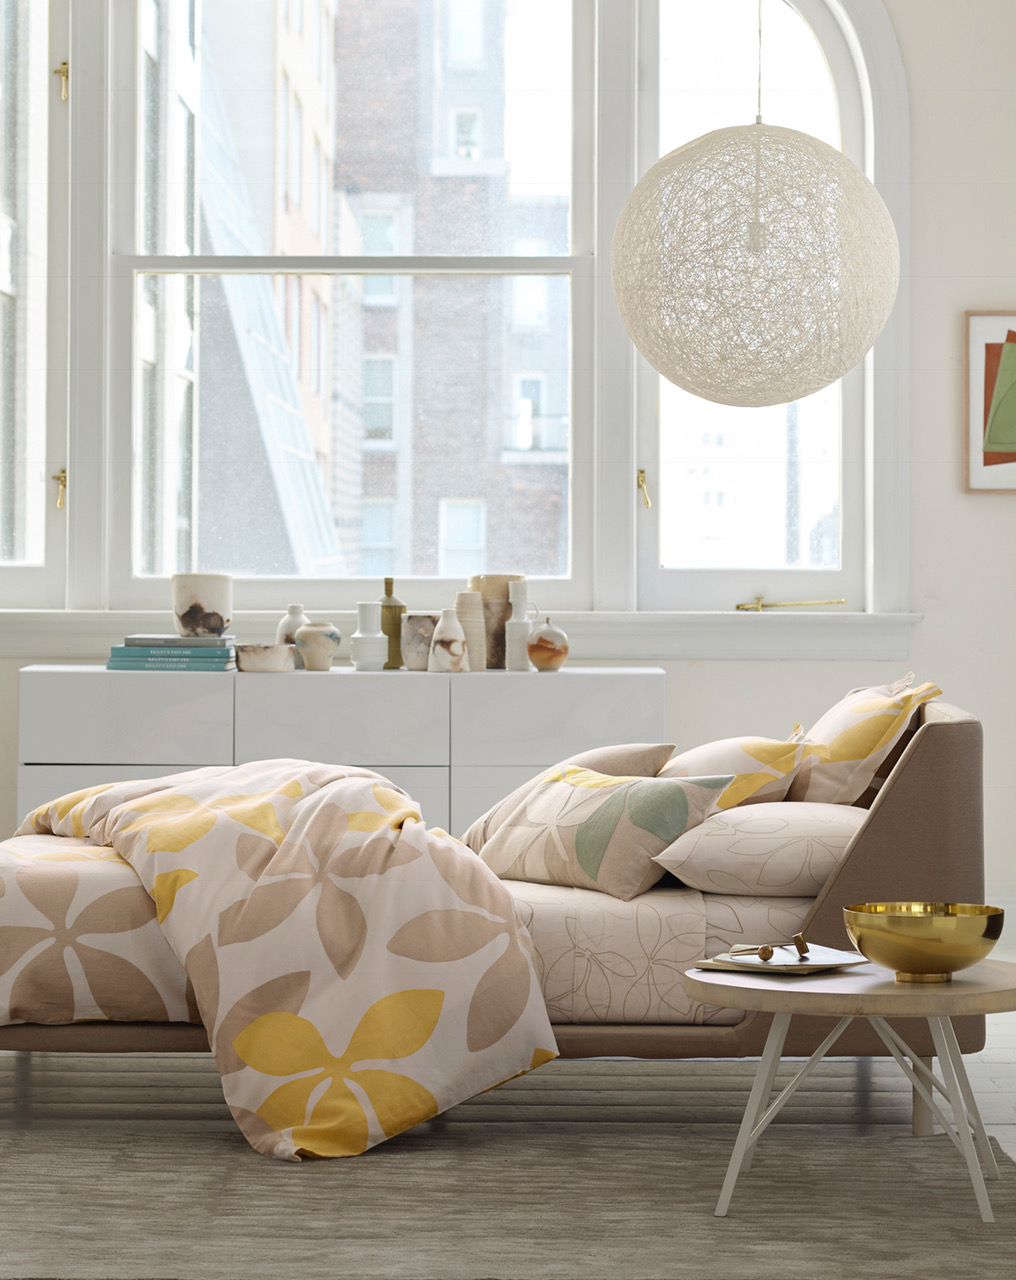 Itu0027s Almost Memorial Day, Is Your Haute Hamptons Home Prepped For A Summer  Of Style? Changing Up The Bedding In The Master Bedroom, Or Adding New Pops  Of ...